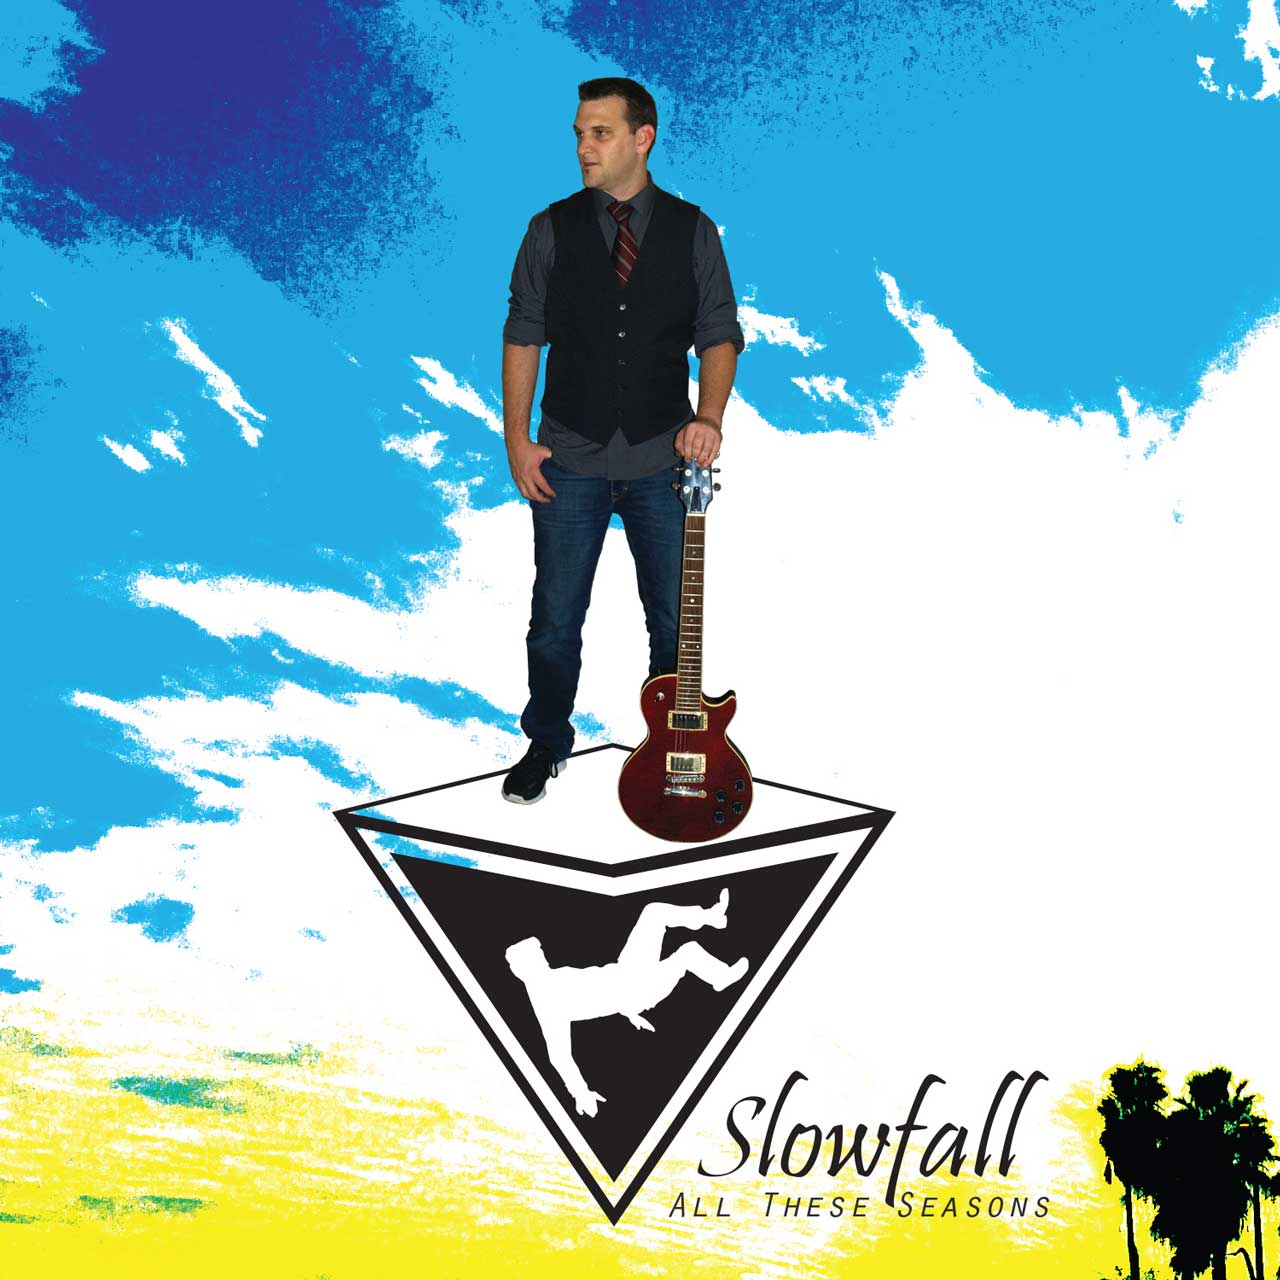 SlowFall Music